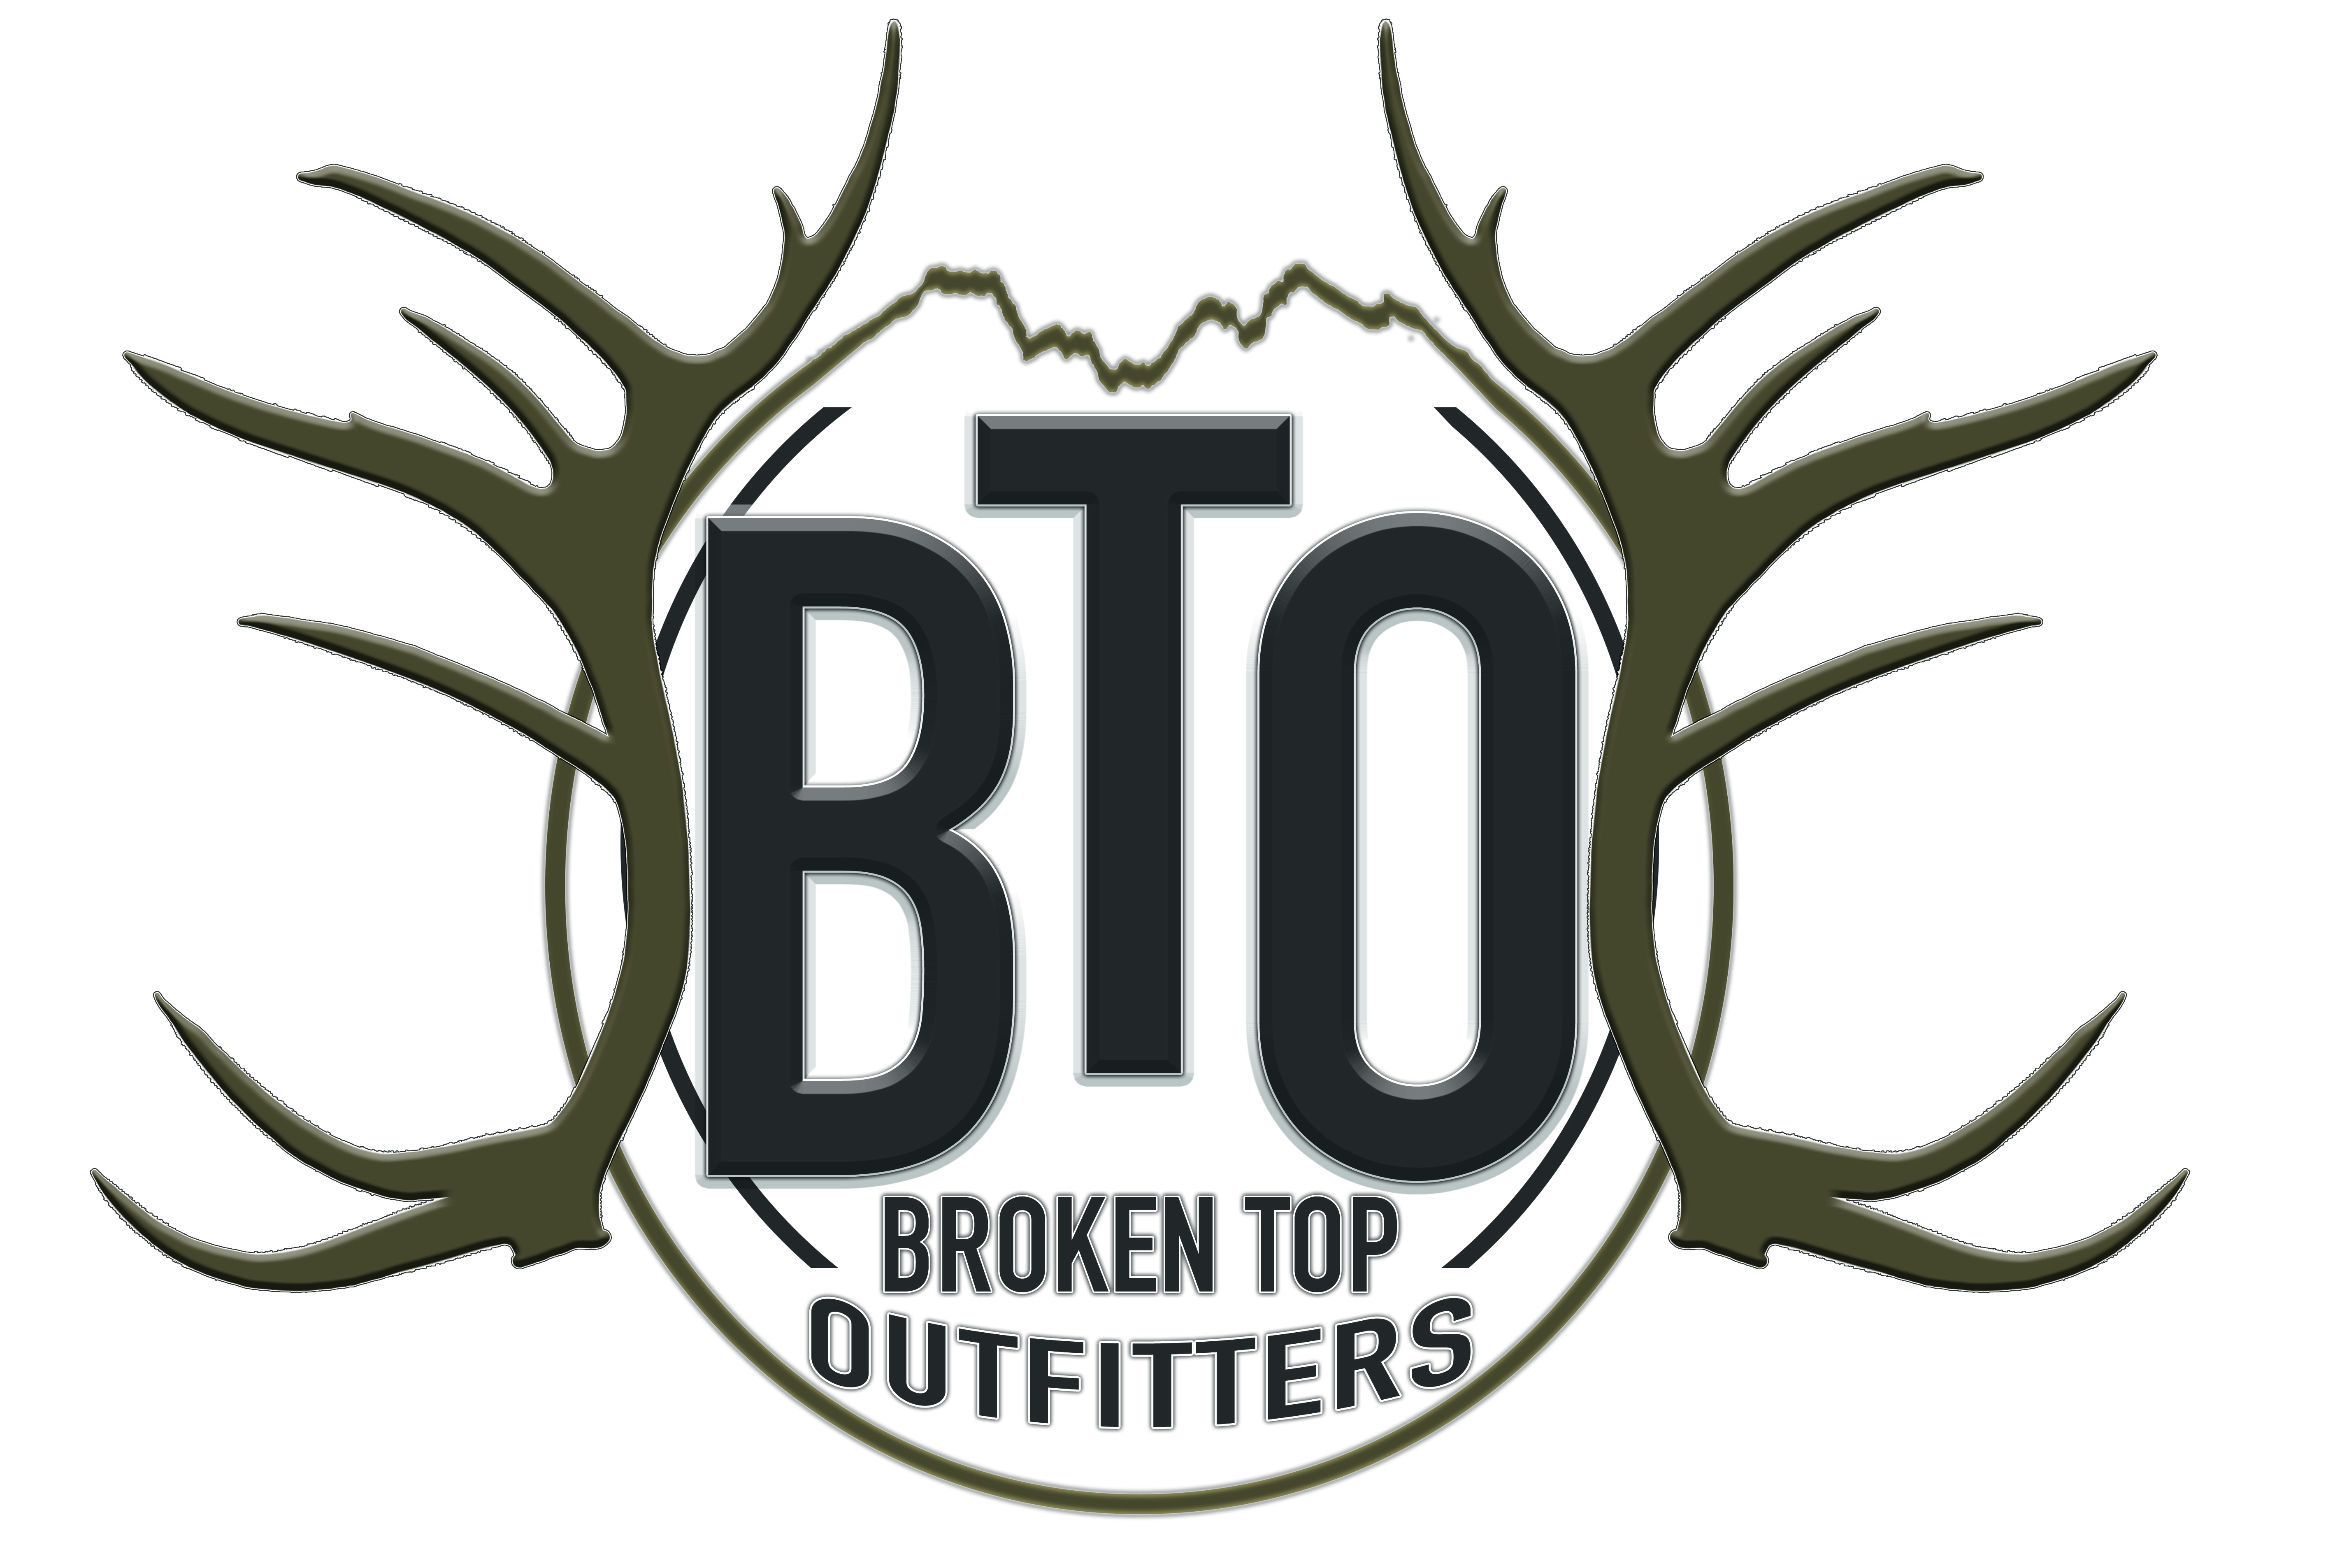 Broken Top Outfitters